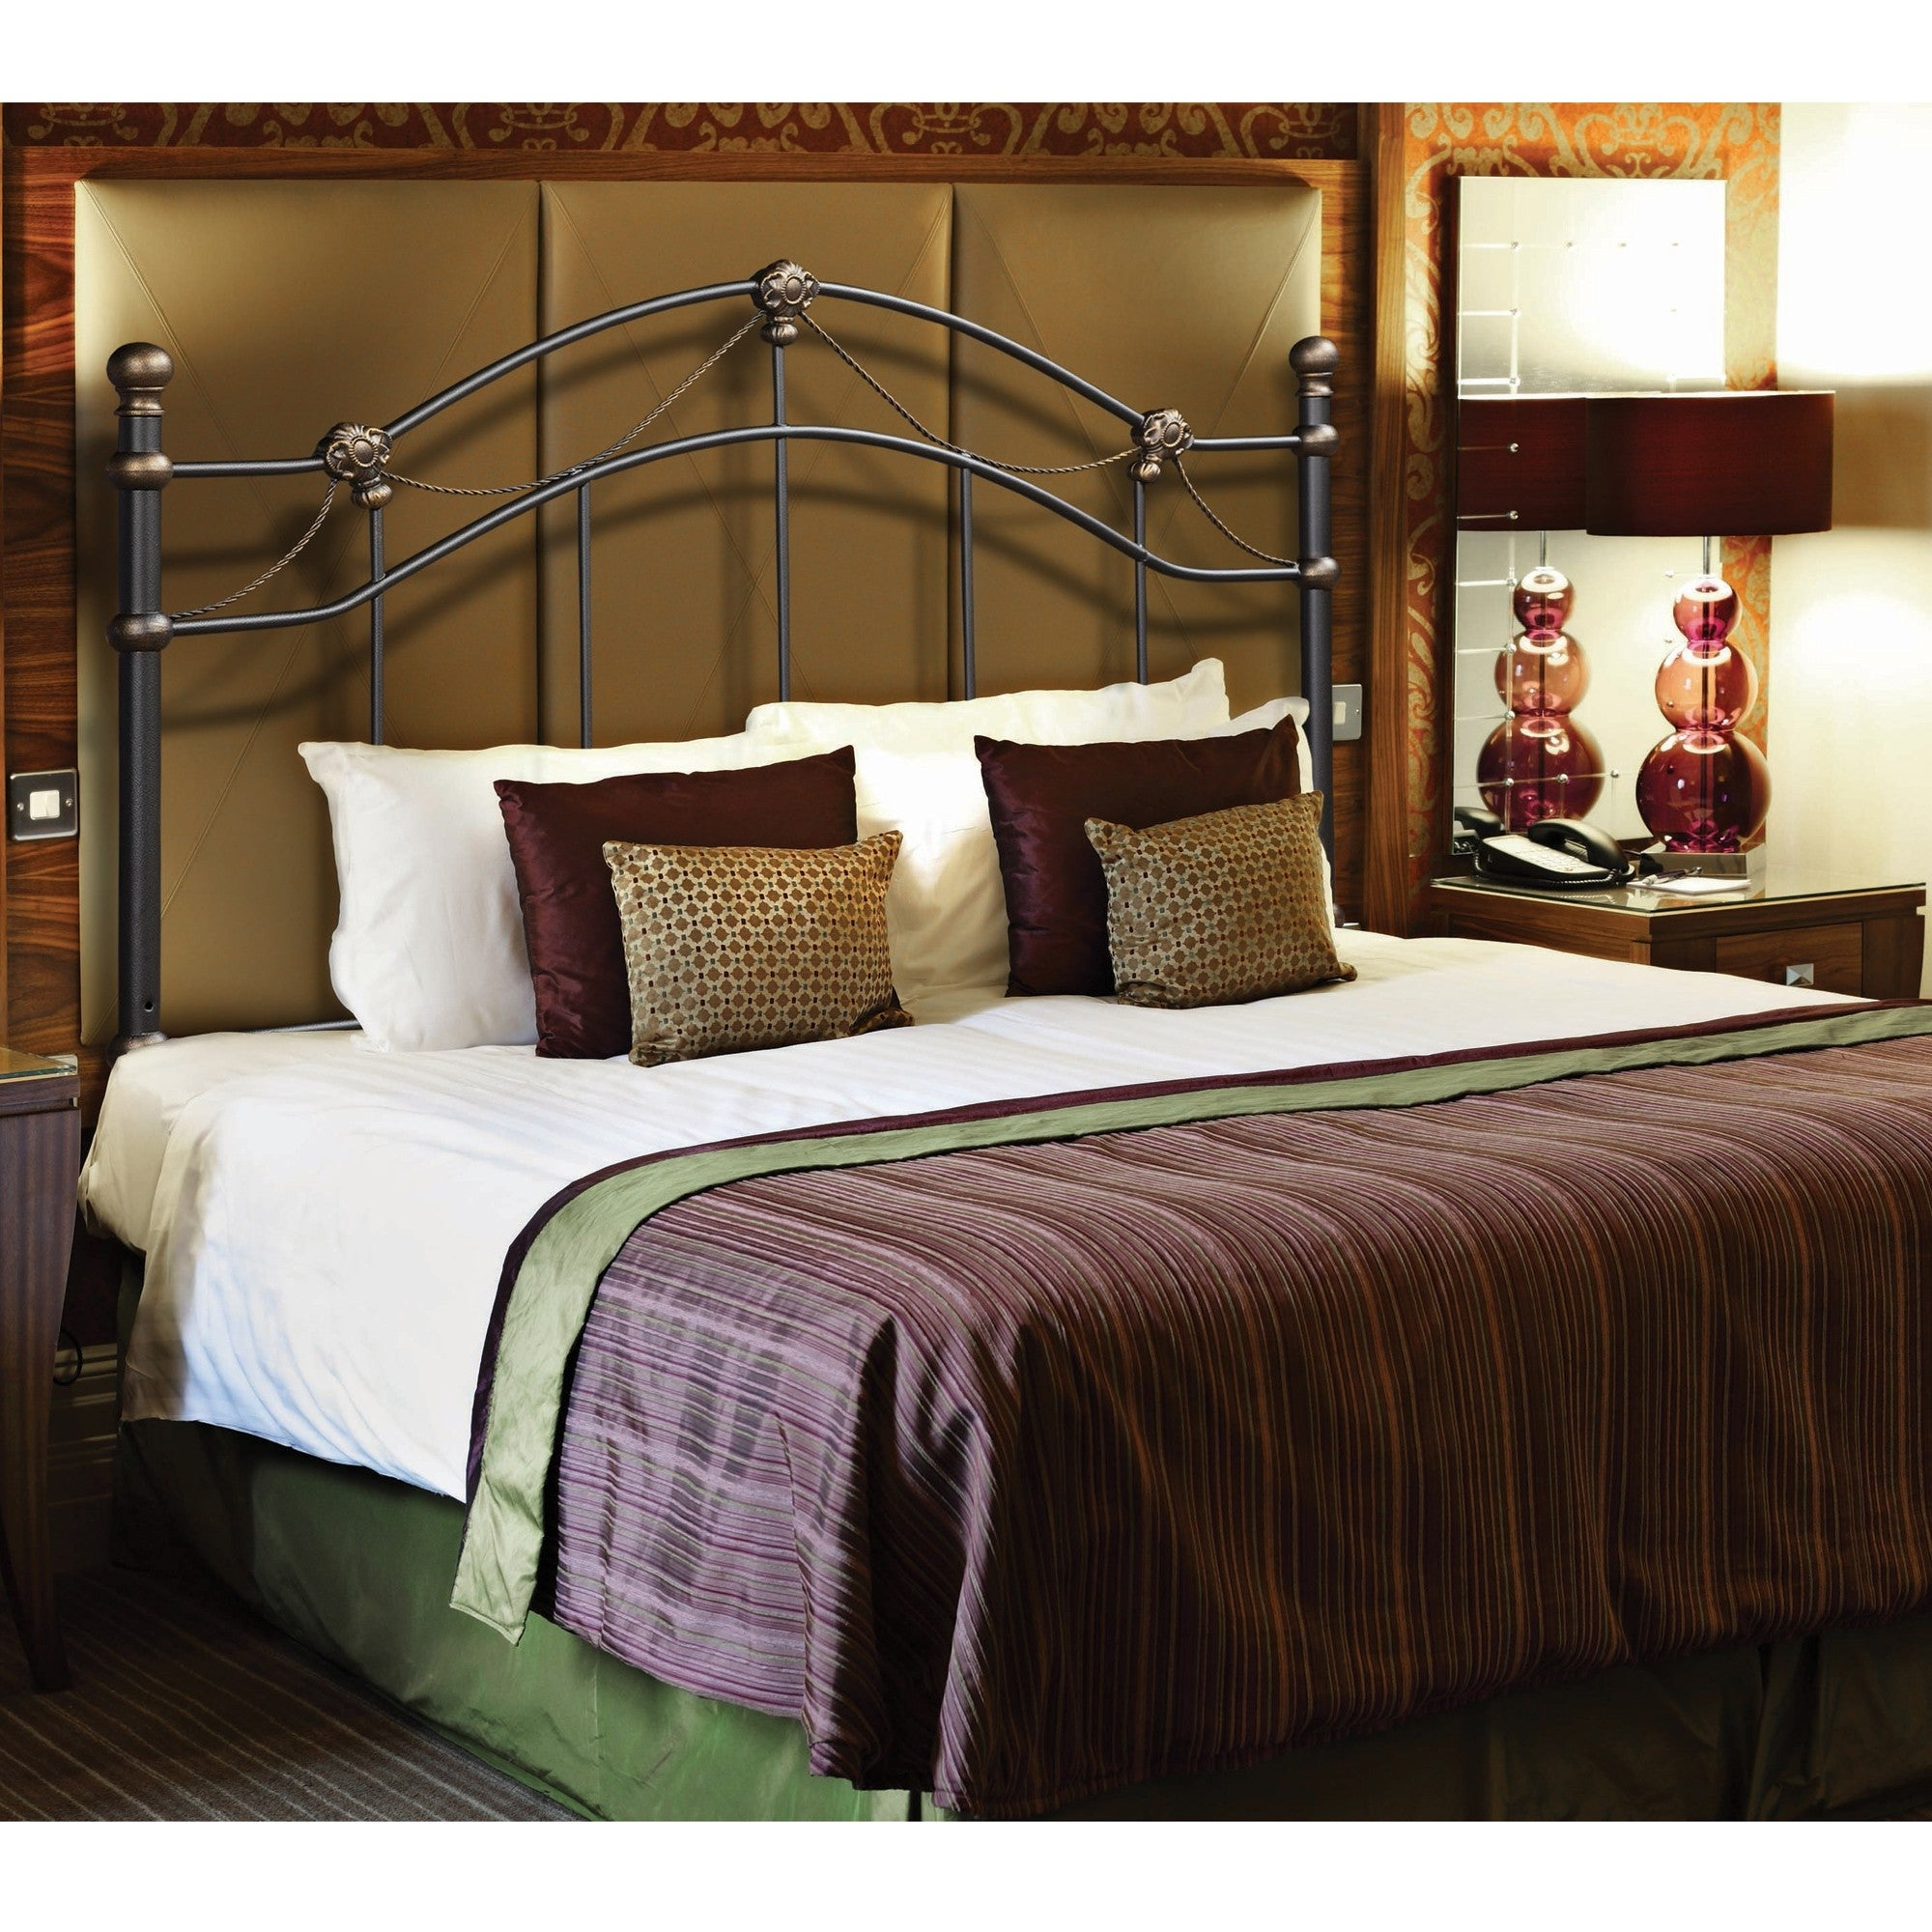 Shop hammered black full queen head or footboard free shipping today overstock com 6408106